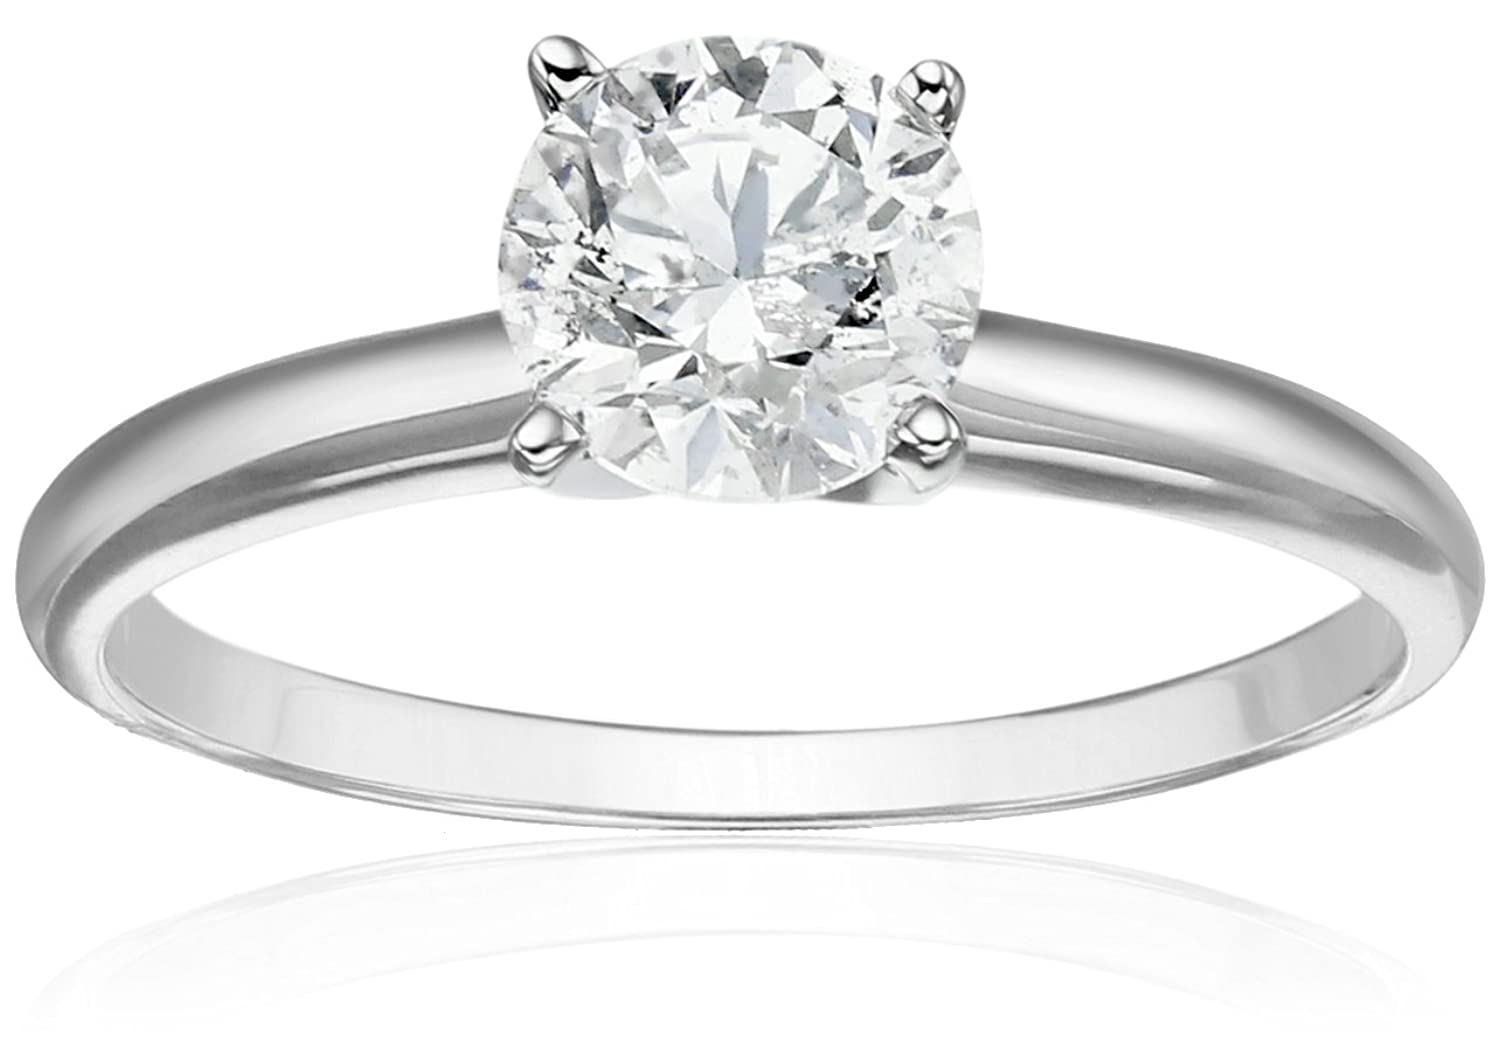 14k White Gold Round Solitaire Diamond Ring (1 cttw, H-I Color, I2-I3 Clarity)